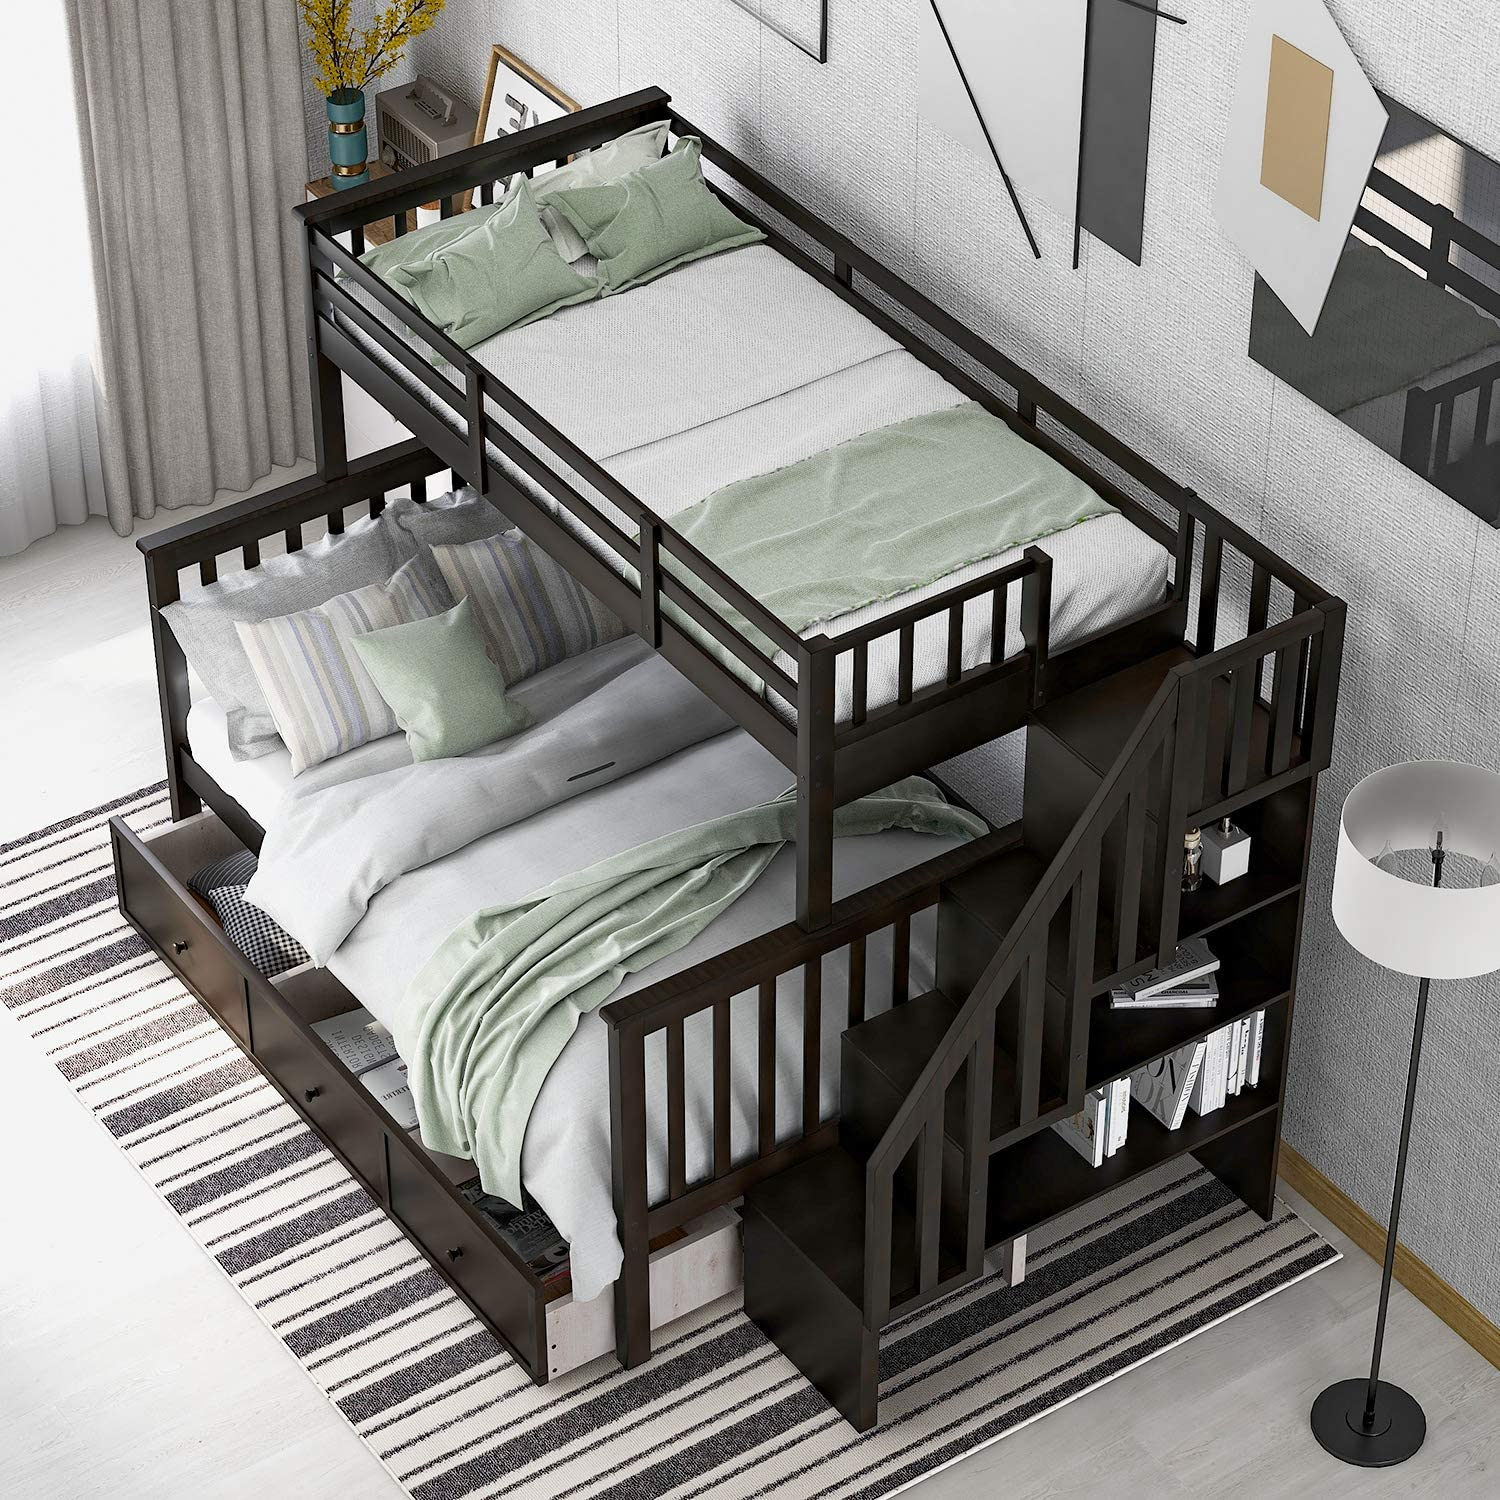 Buy Softsea Twin Over Full Bunk Bed With Stairs Drawers 4 Storage Length Guard Rail For Kids And Teenagers Espresso Stairway Bunk Bed No Box Spring Needed Espresso Online In Indonesia B08f9952mf